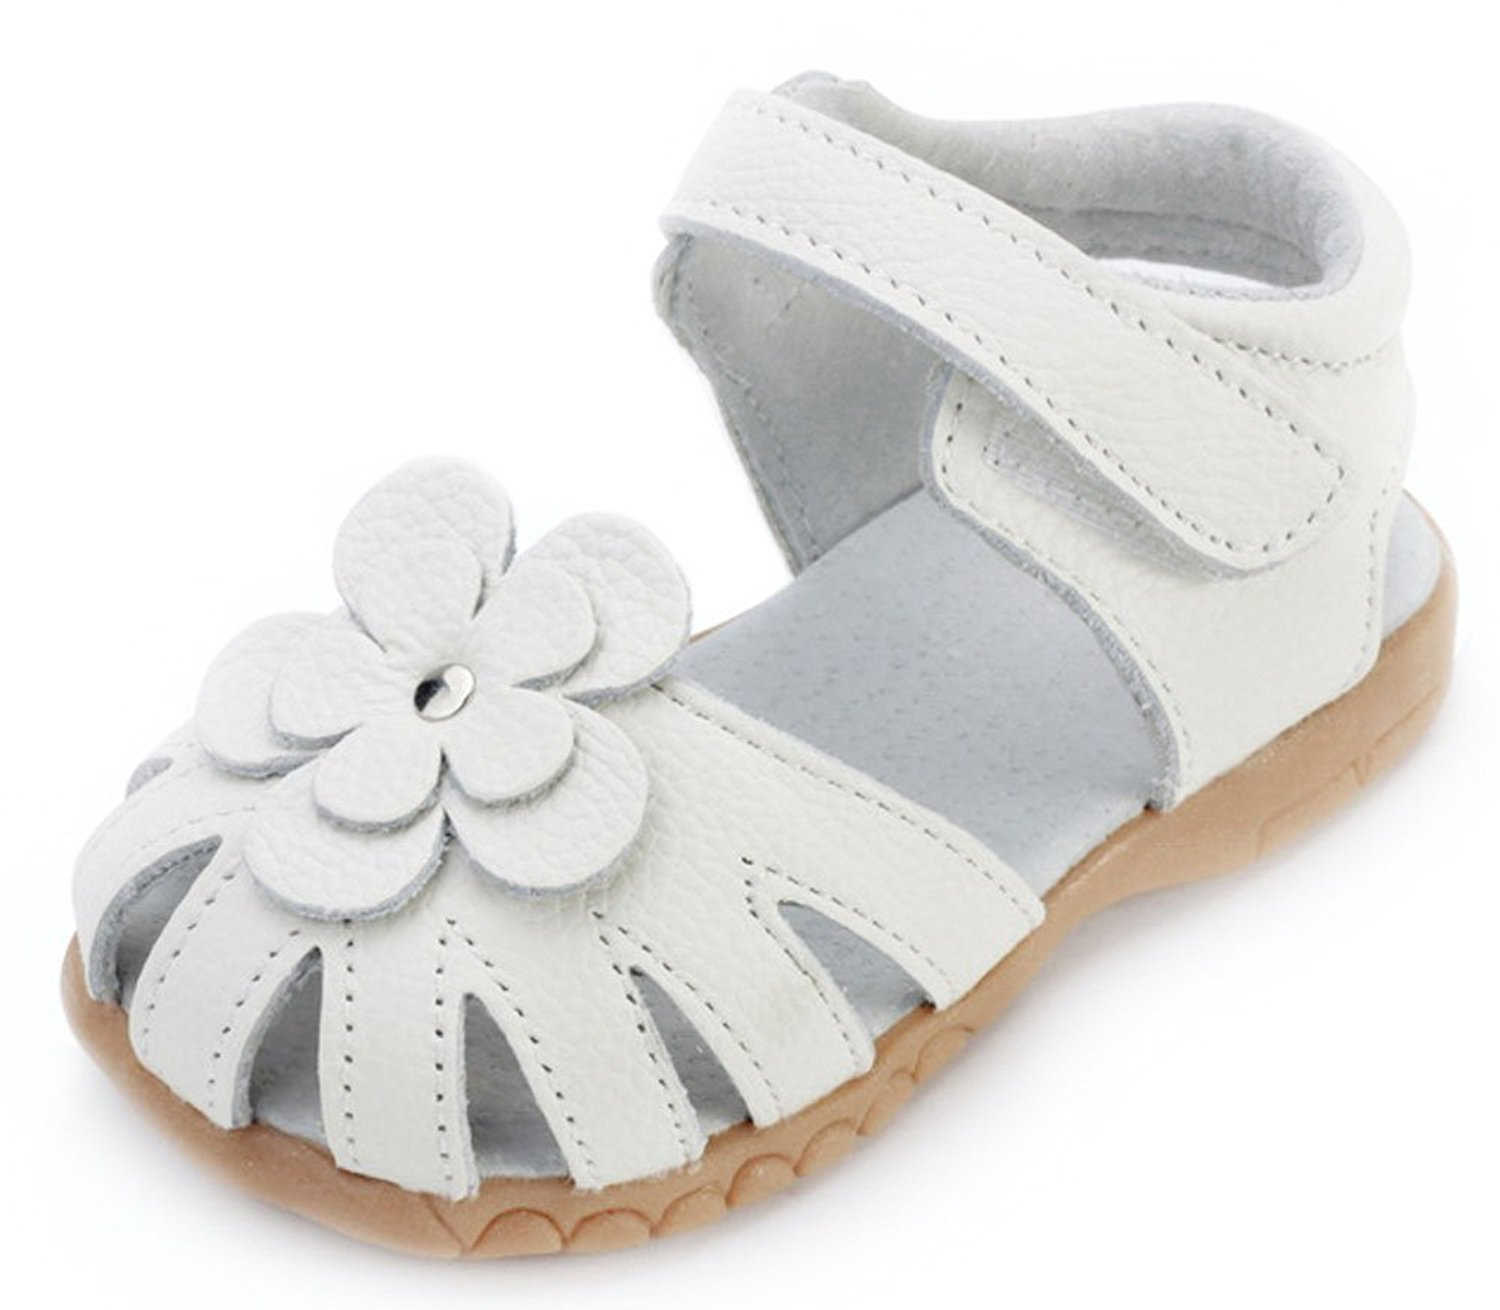 Orgrimmar Girls Genuine Leather Solid Flower Sandals product image 8e65bd26dbc